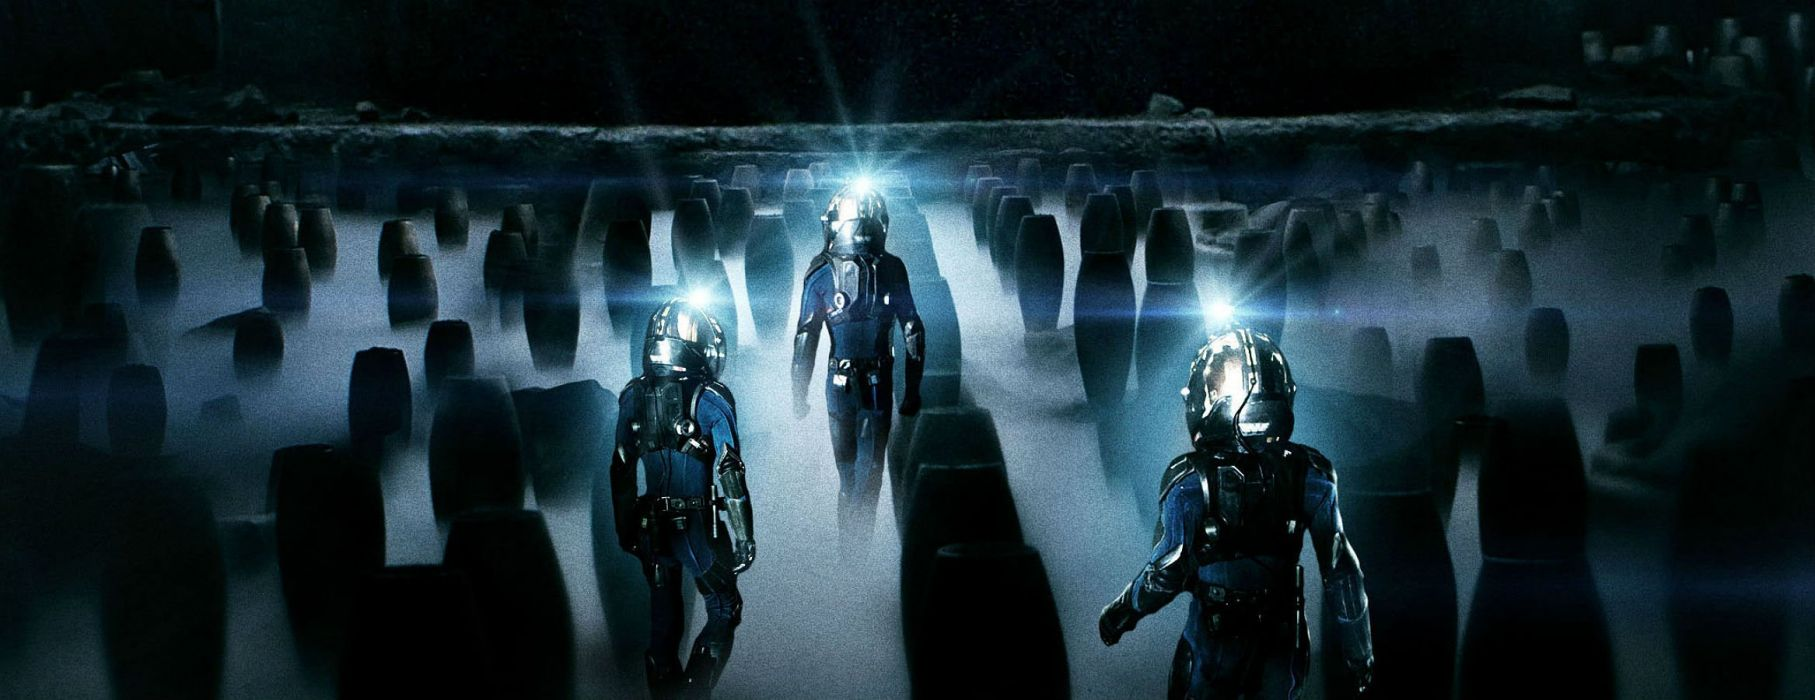 PROMETHEUS ALIEN COVENANT aliens sci-fi futuristic adventure wallpaper